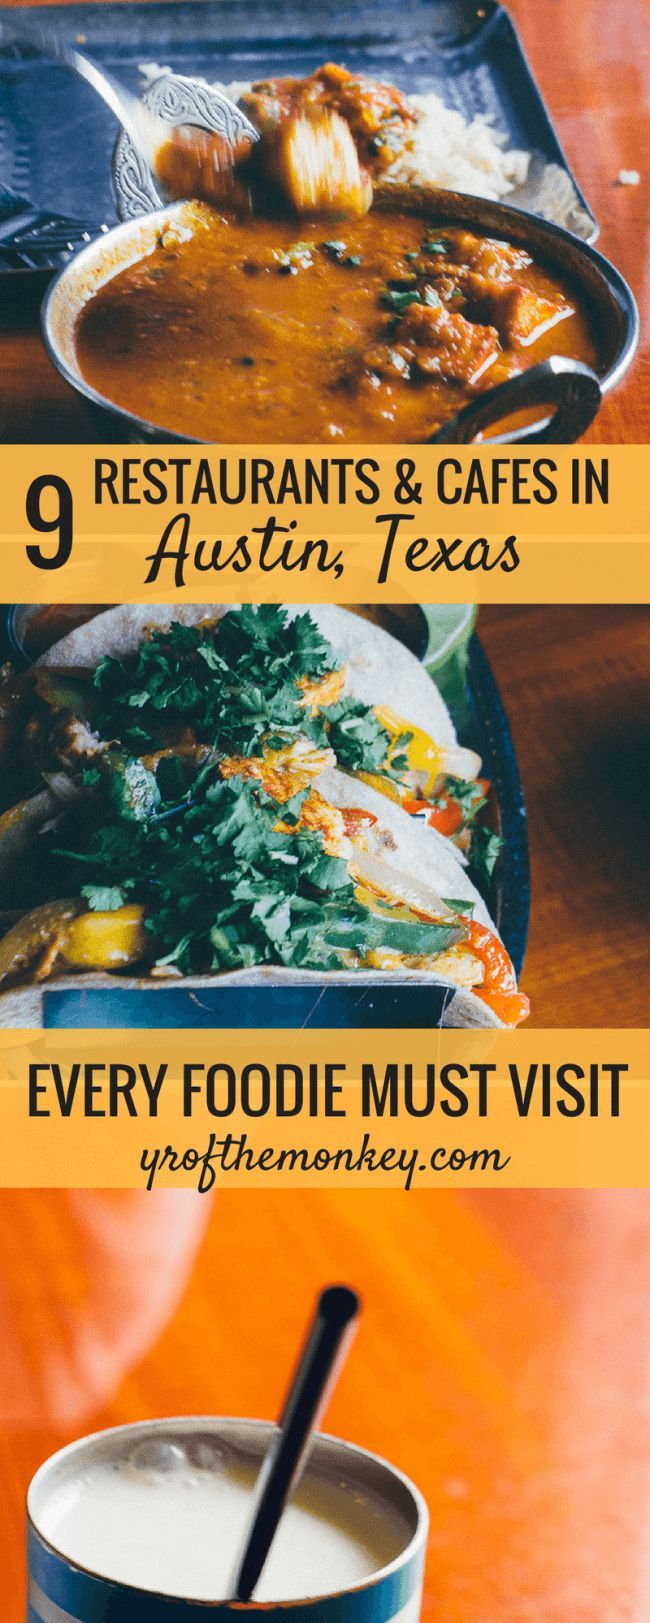 This is an alternate Austin Texas USA dining guide which goes beyond the barbecue and showcases 9 diverse and best restaurants in Austin. This Austin food guide includes vegetarian and ethnic options and tells you where to eat in Austin for breakfast, lunch and dinner. Don't miss reading this culinary Austin guide if you are a foodie. Pin it to your USA board for a lipsmacking food tour! #foodguide #austin #usatravel #restaurants #vegetarian